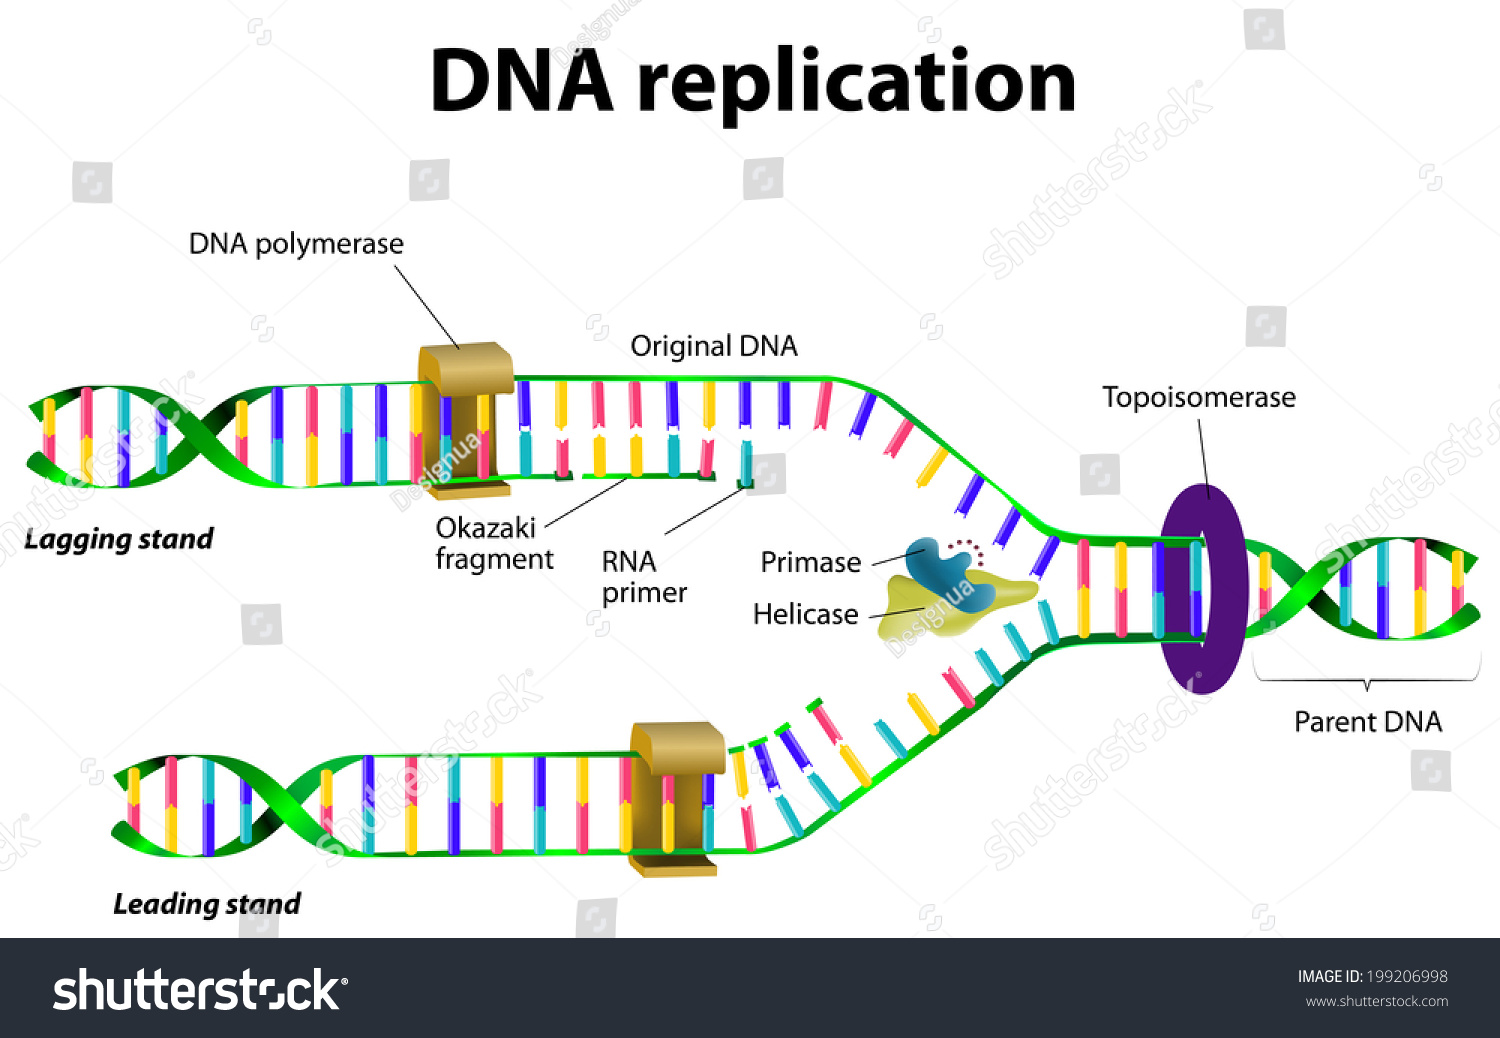 dna replication vector diagram 199206998 shutterstock : dna replication diagram - findchart.co